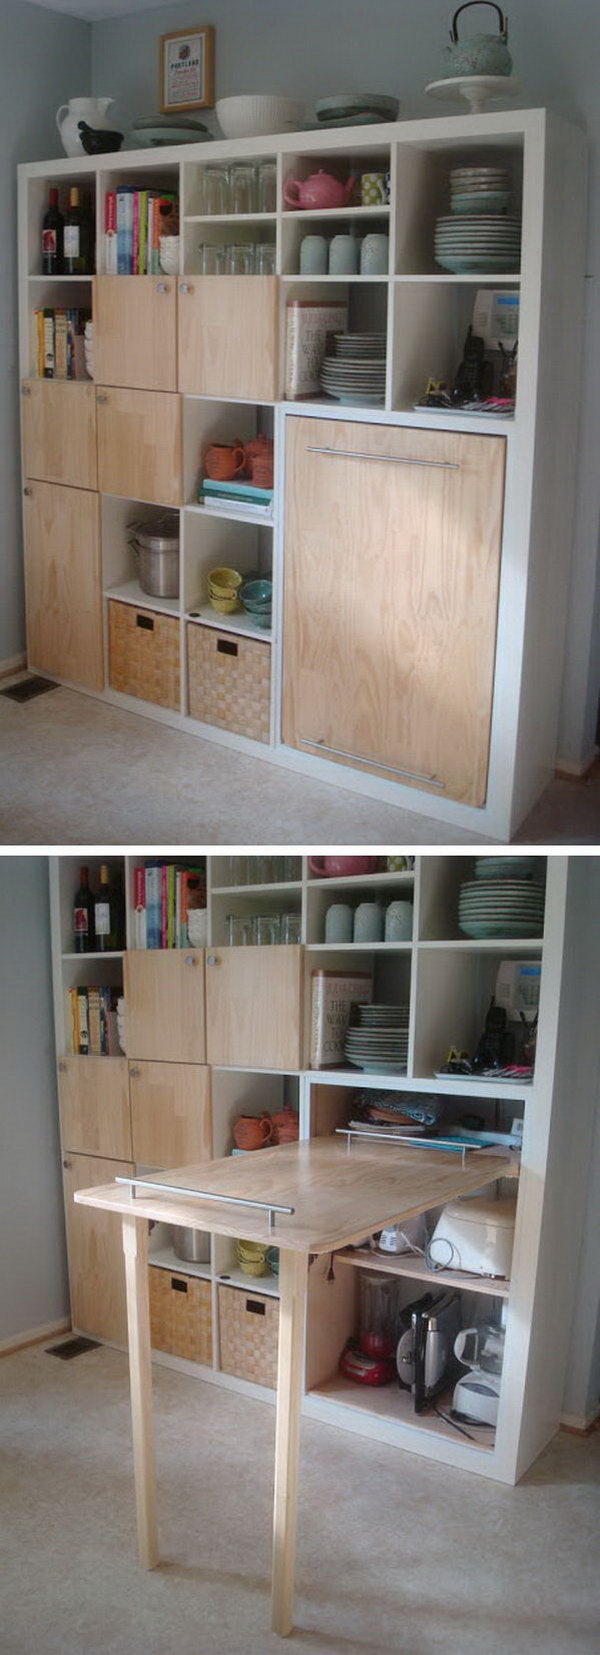 storage design kitchen find how home hidden to pleasing ideas